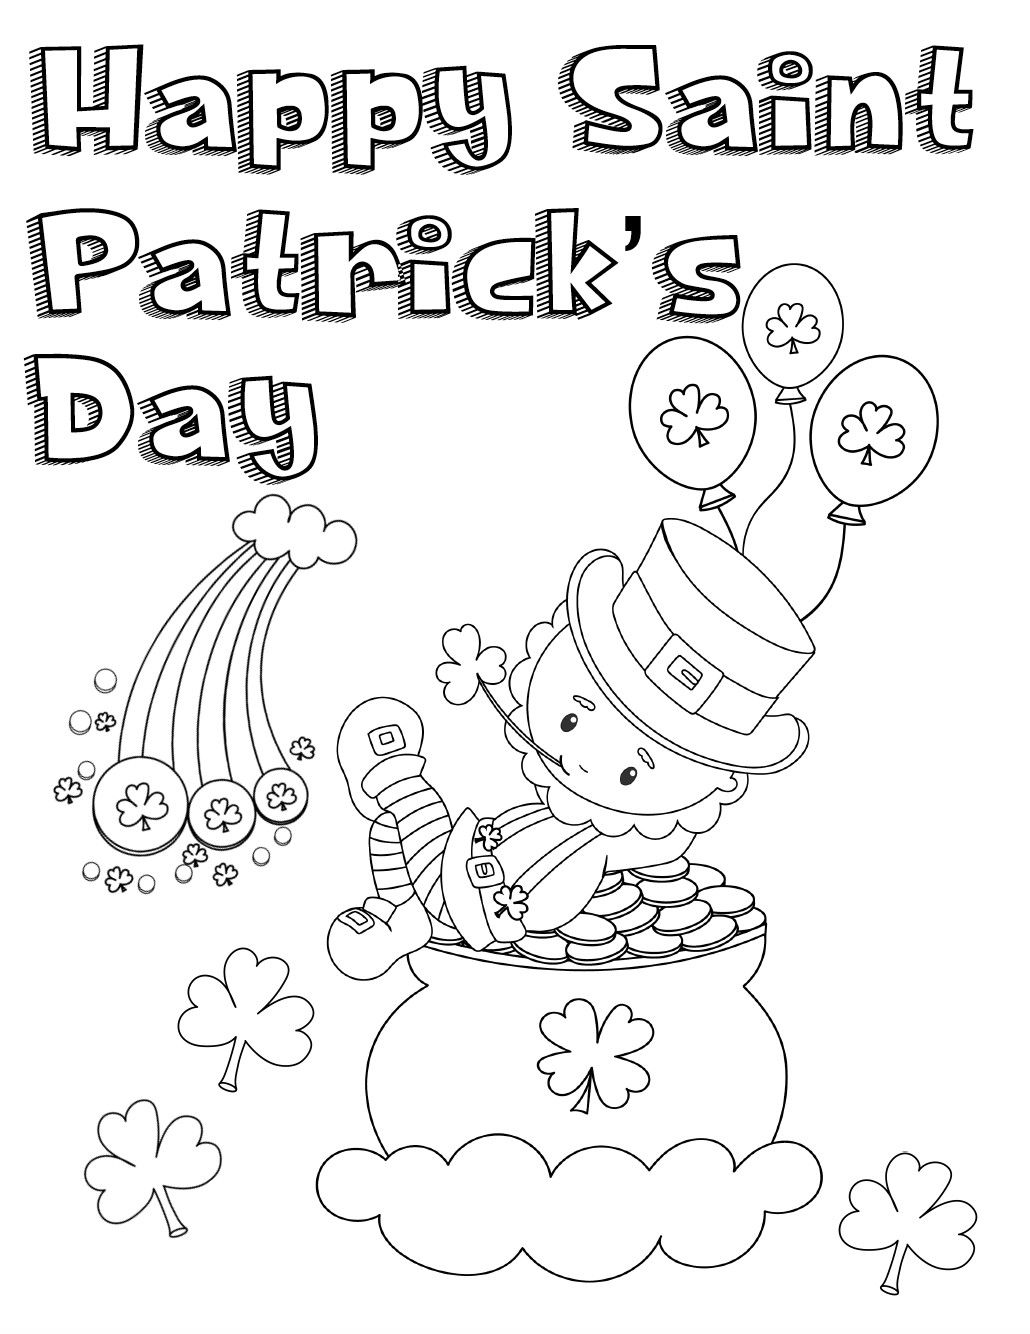 Best ideas about Free Coloring Sheets For Kids For St Patrick'S Day . Save or Pin Free Printable St Patrick's Day Coloring Pages 4 Designs Now.